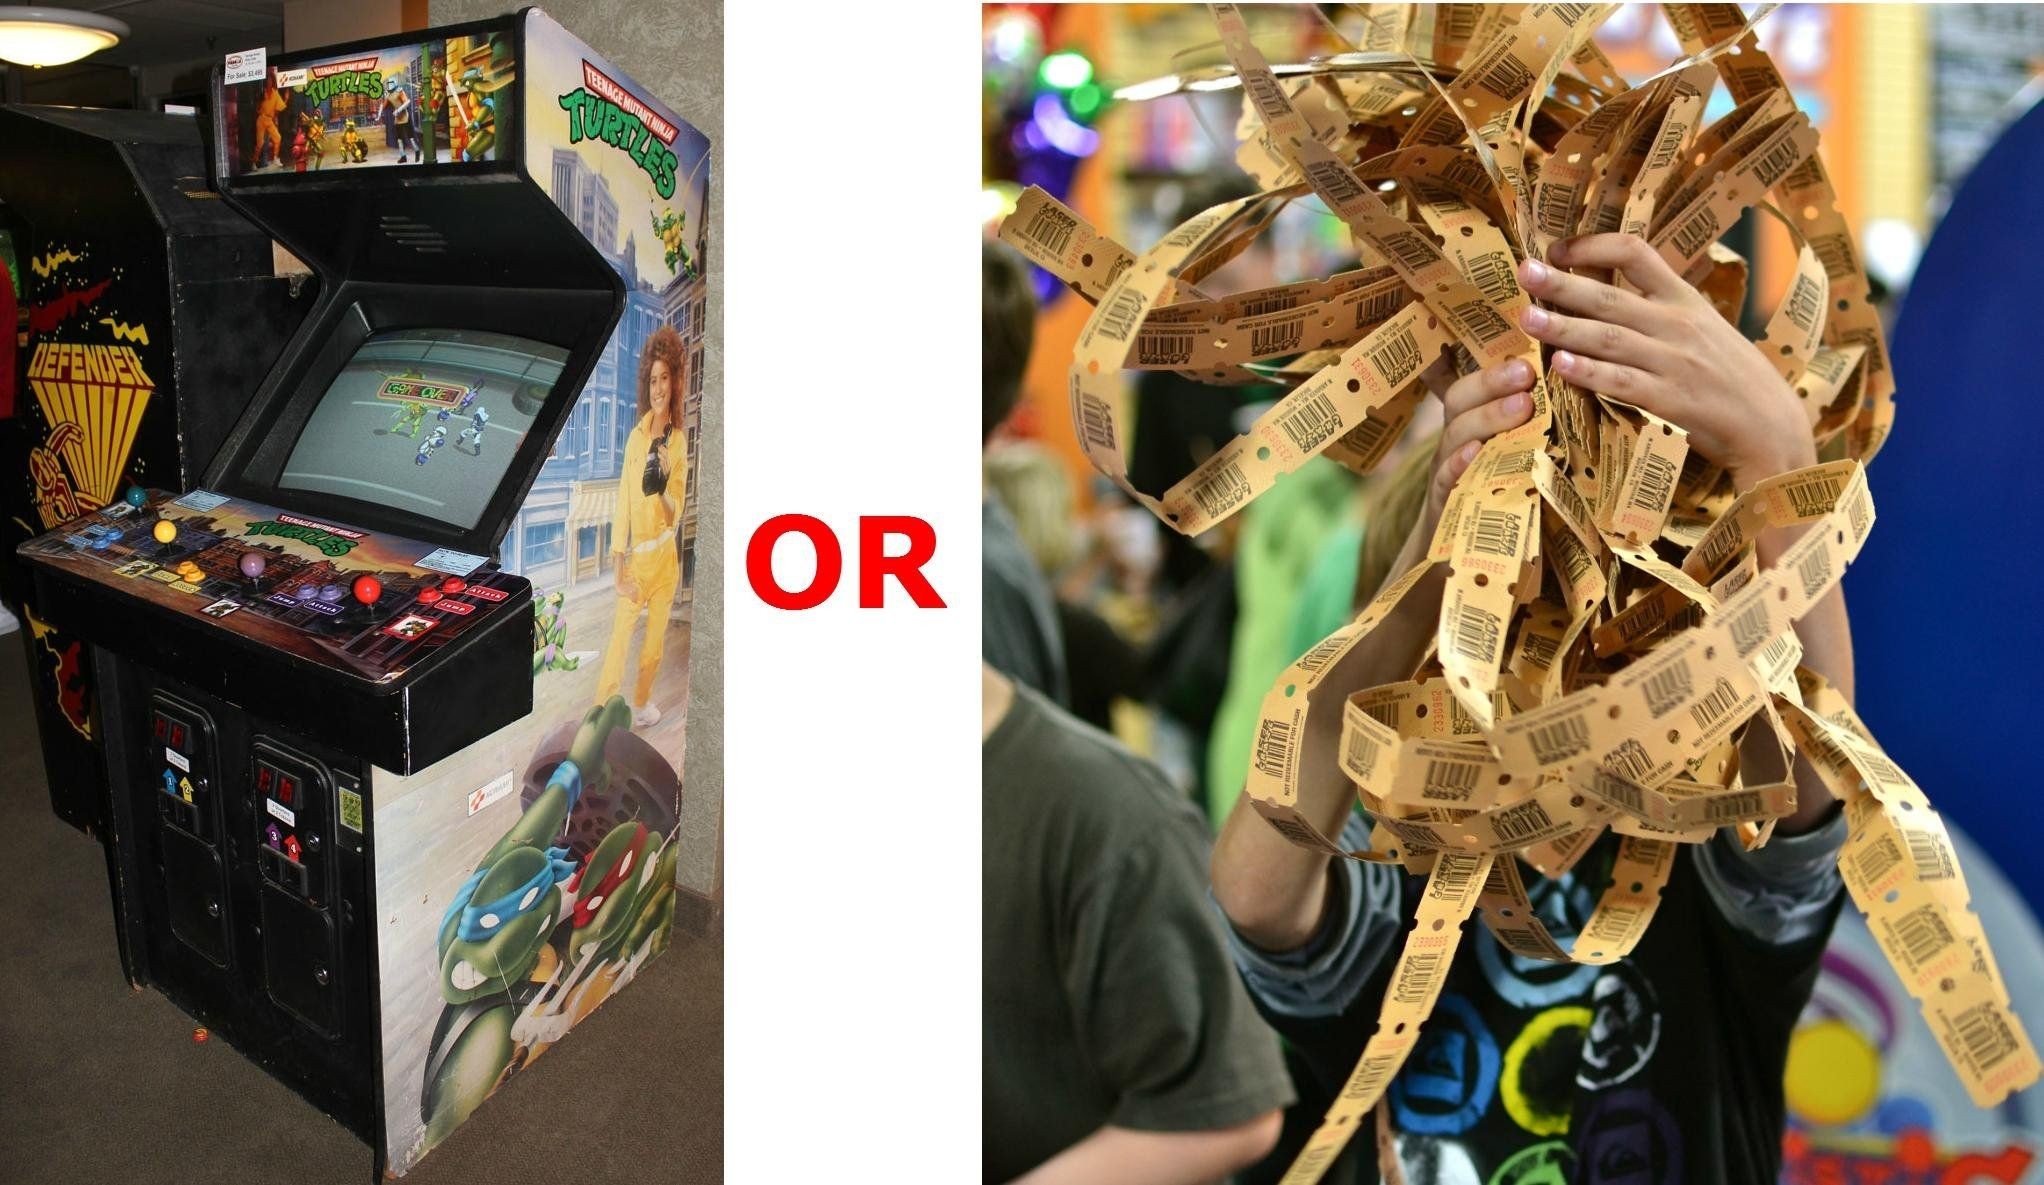 I love ticket games but I'd pick the Teenage Mutant Ninja Turtles arcade game any day